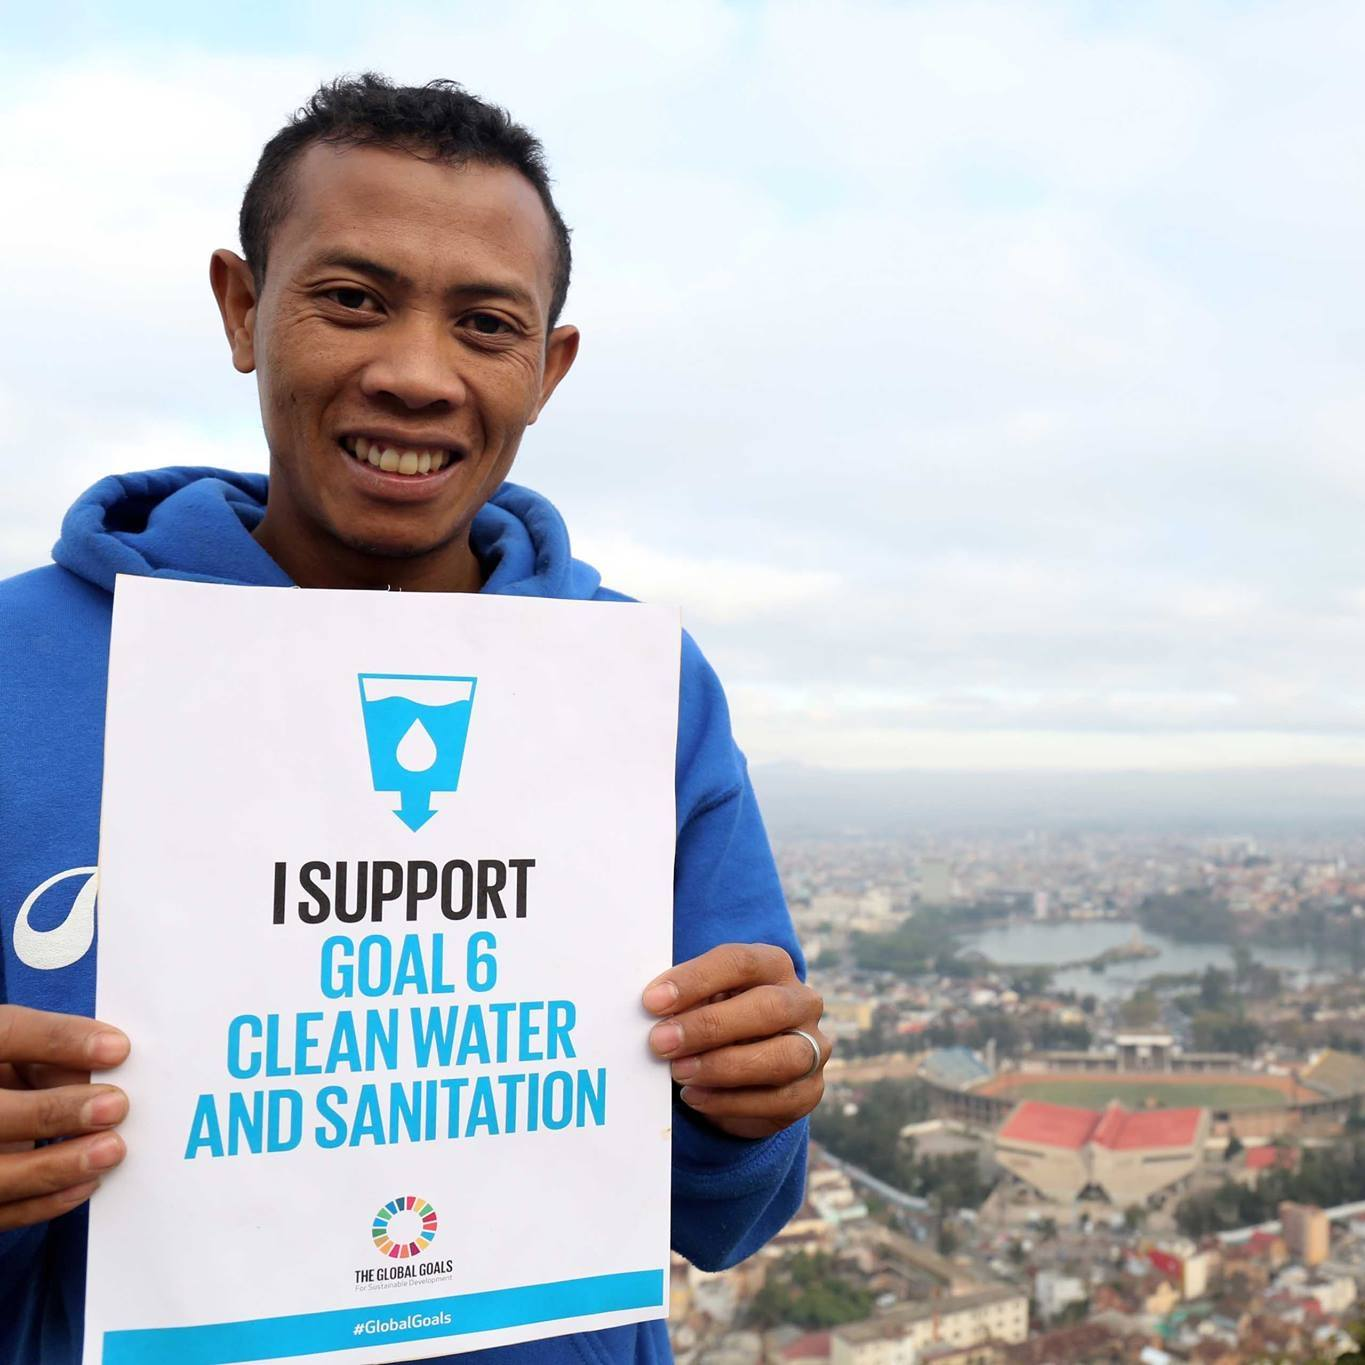 Pictured here is Ernest, a #waterwarrior